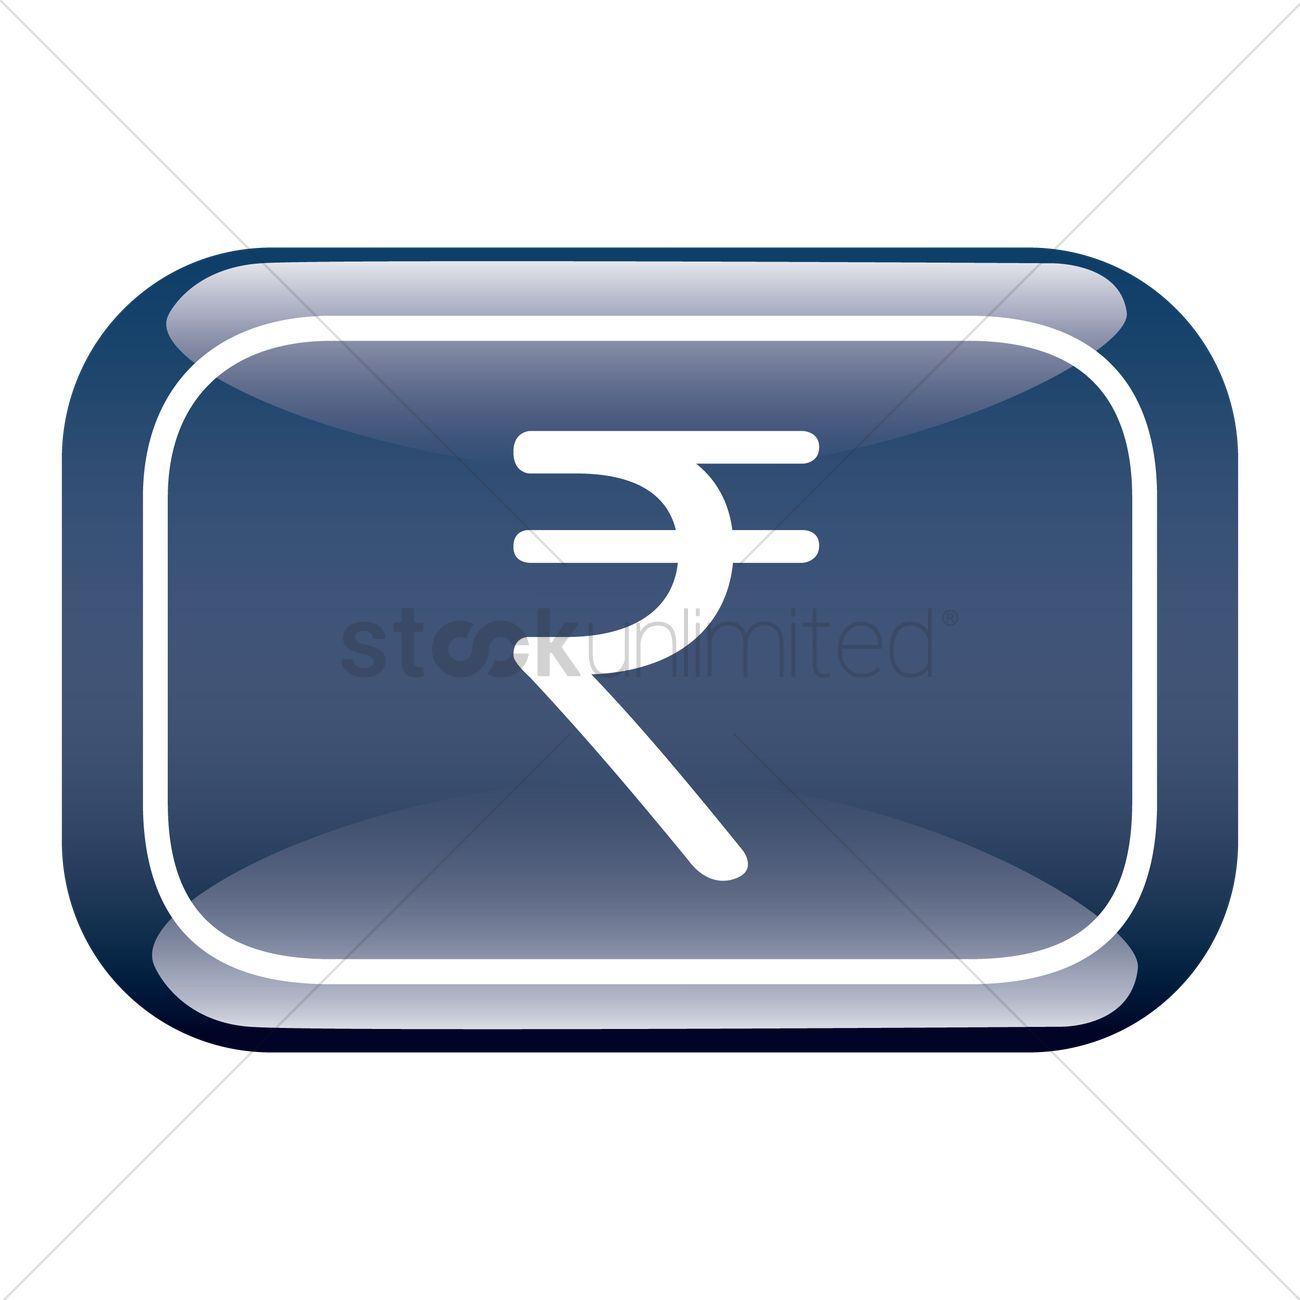 India Rupee Currency Symbol Vector Image 1306111 Stockunlimited